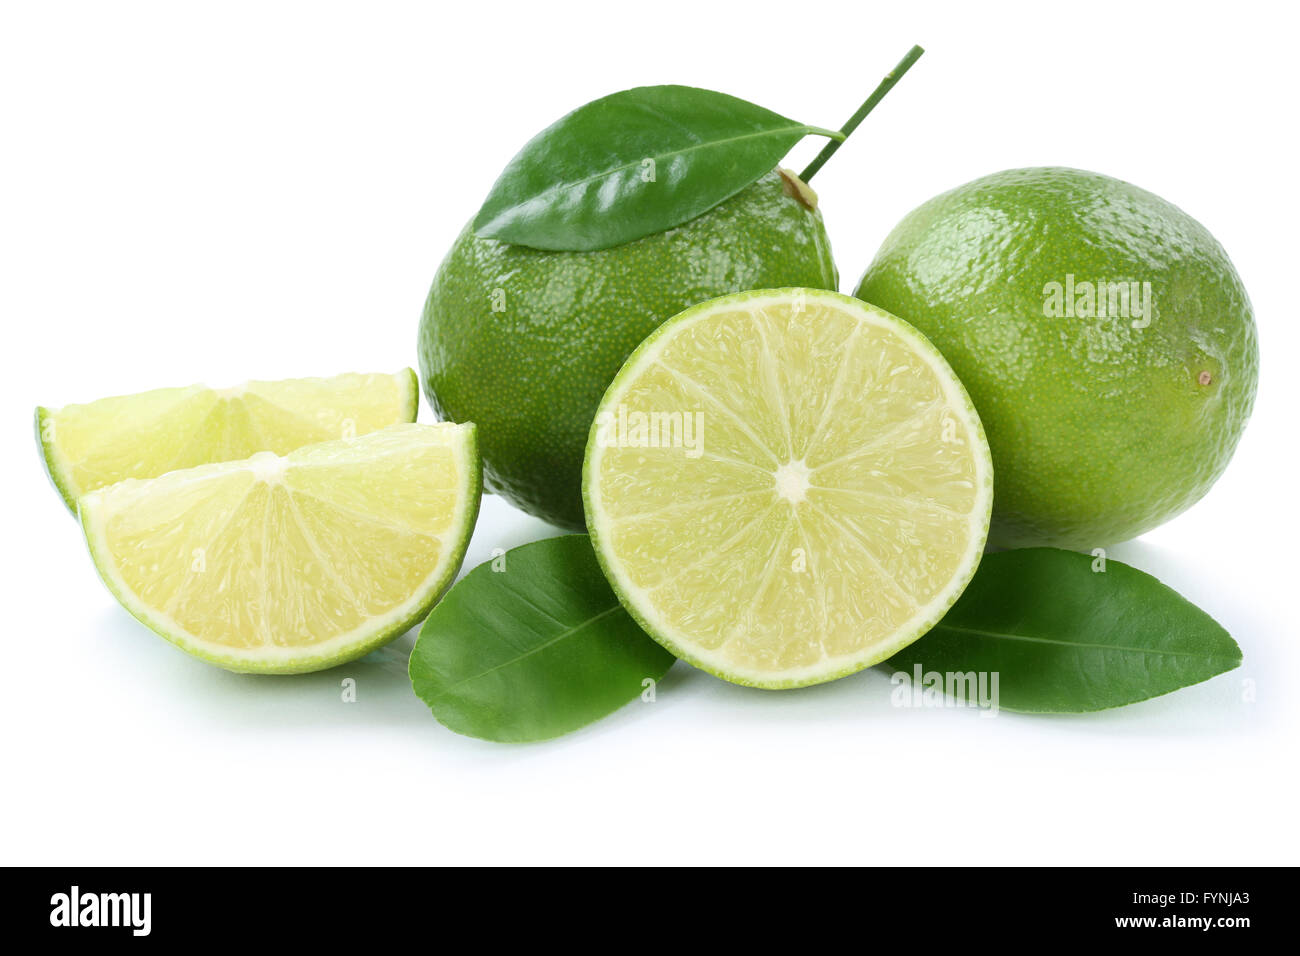 Lime limes slice organic fruits isolated on a white background - Stock Image